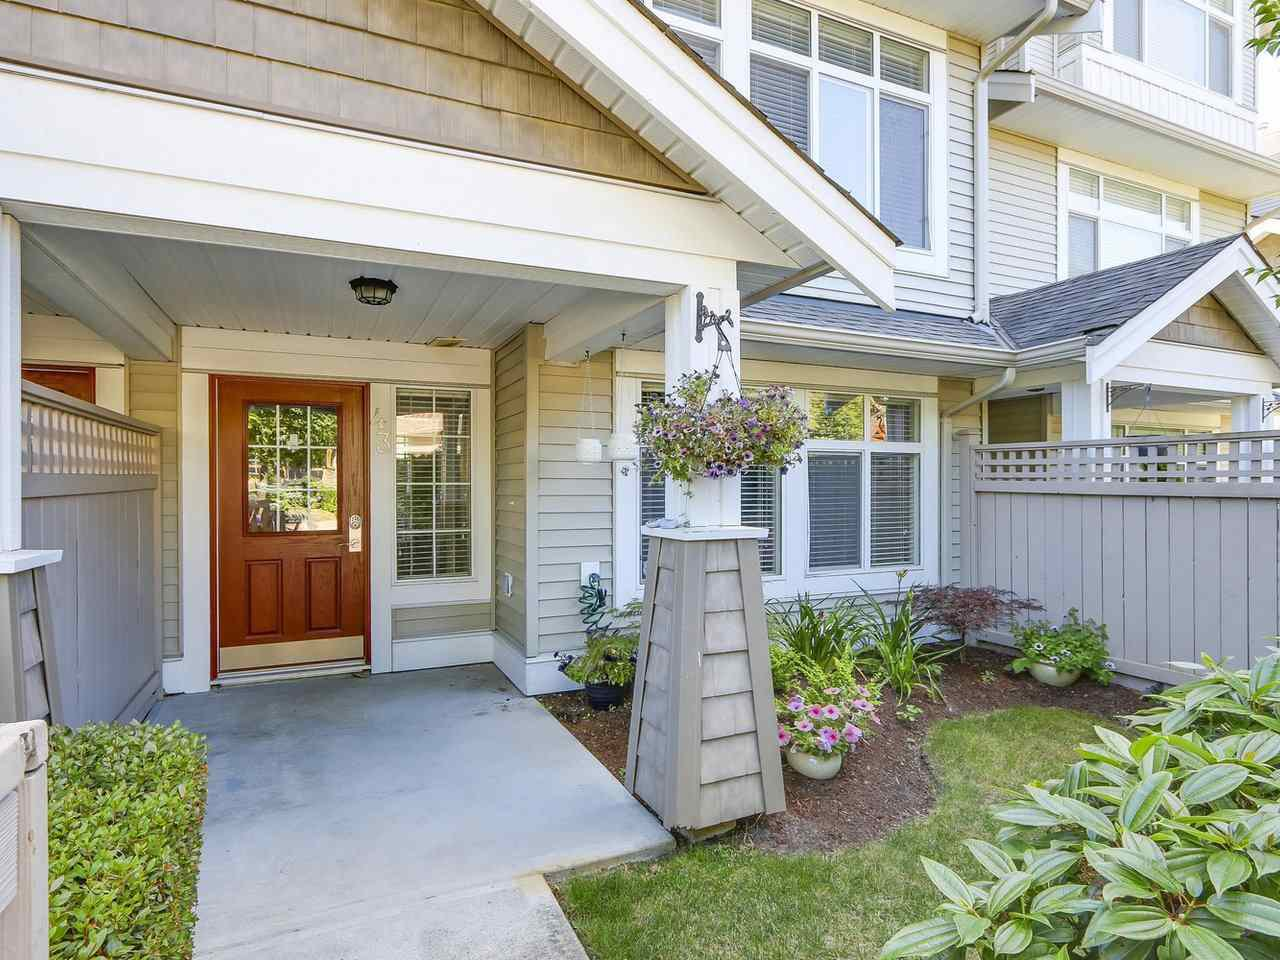 Photo 2: Photos: 43 19330 69 AVENUE in Surrey: Clayton Townhouse for sale (Cloverdale)  : MLS®# R2185704